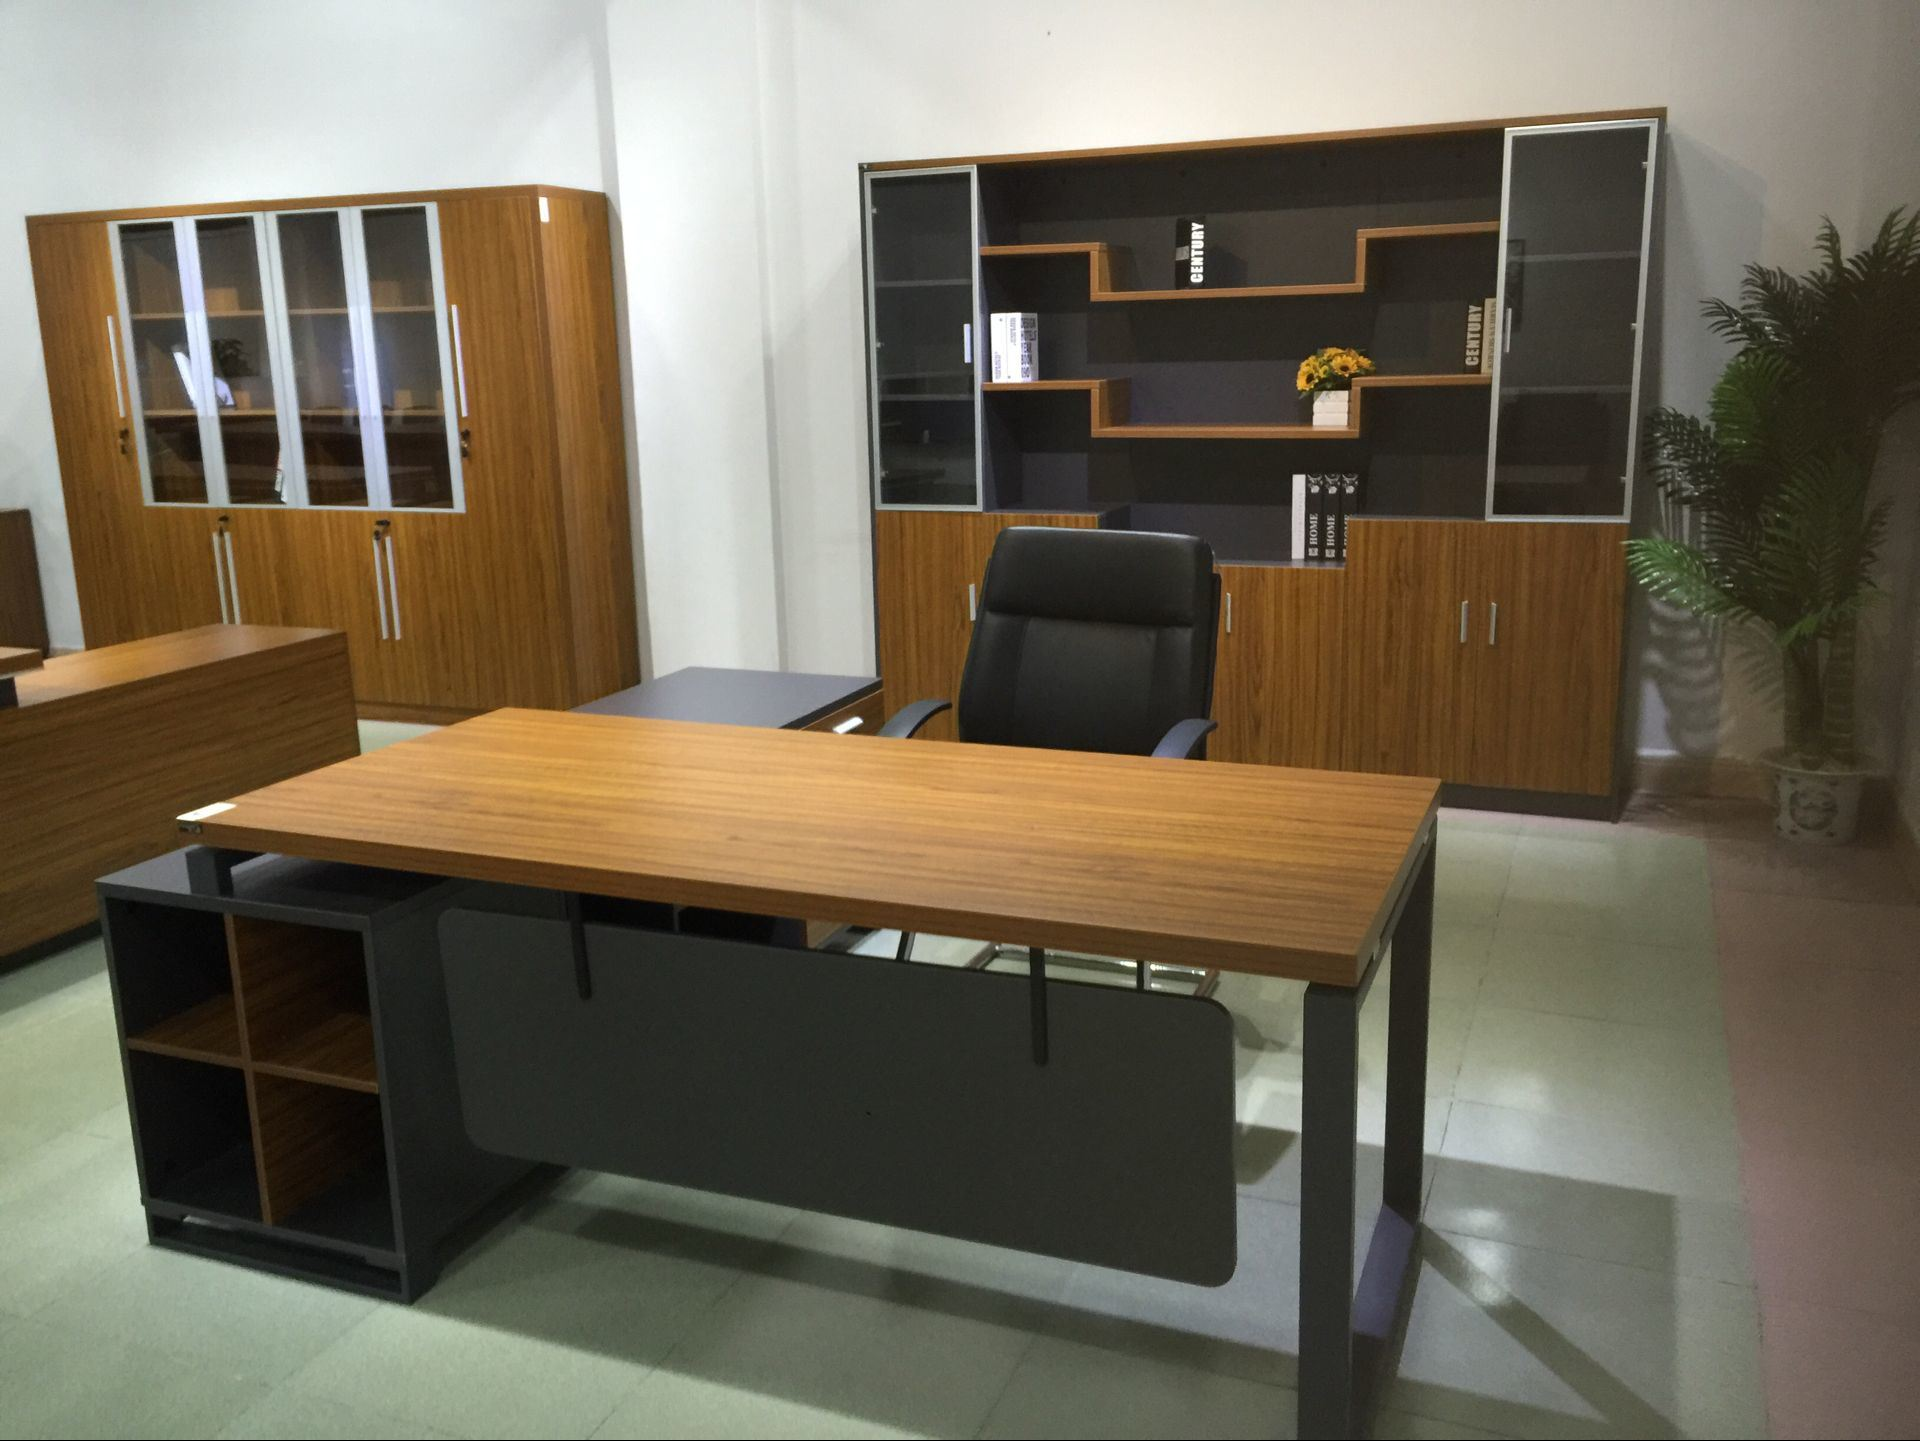 [Hot Item] Stylish Office Desk with Modesty Panel Popular in United States